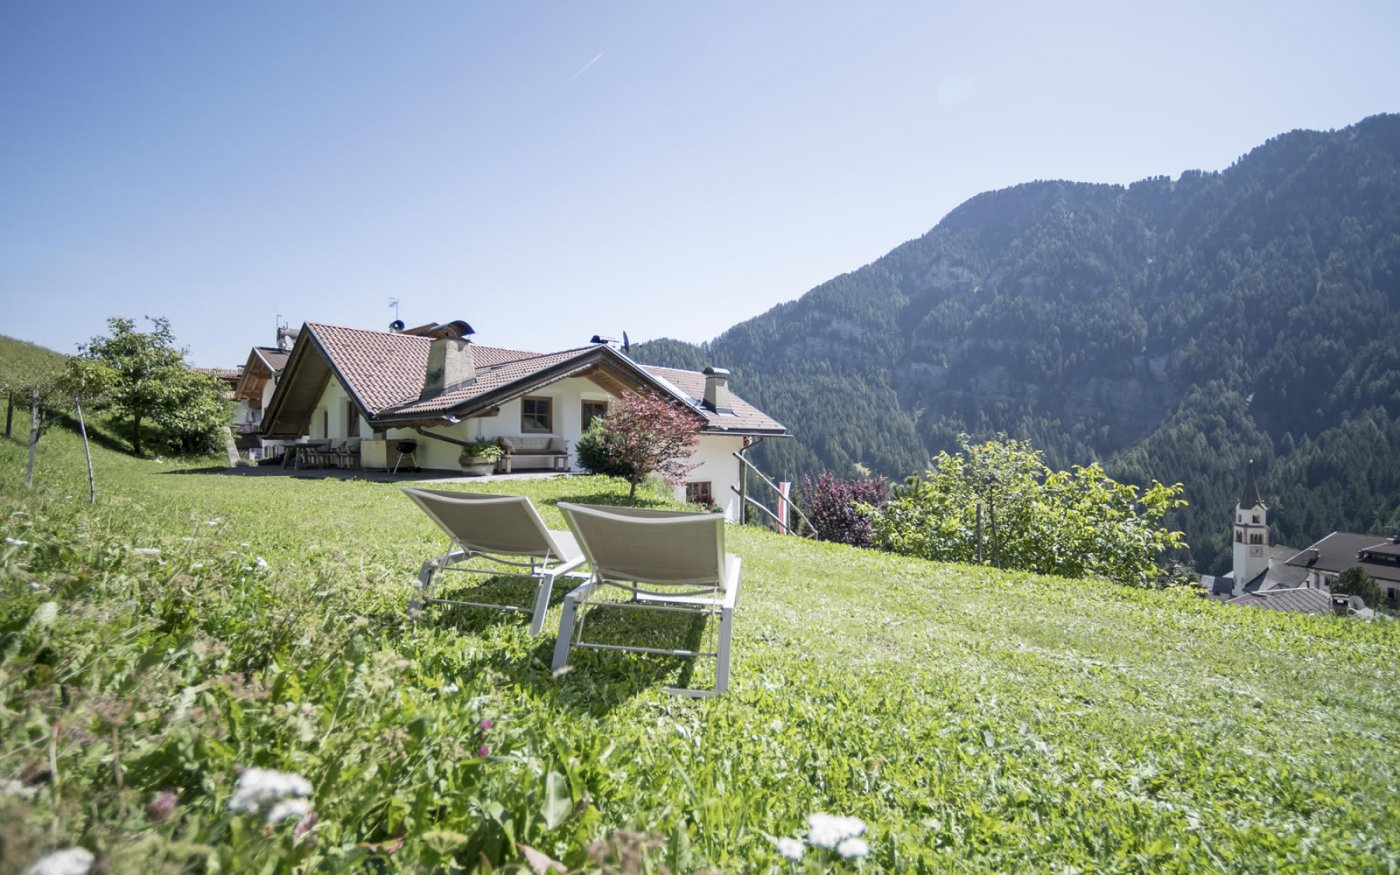 Fresh air and exercise are yours to enjoy, while St. Ulrich, the main town of the Gröden Valley, is close by.